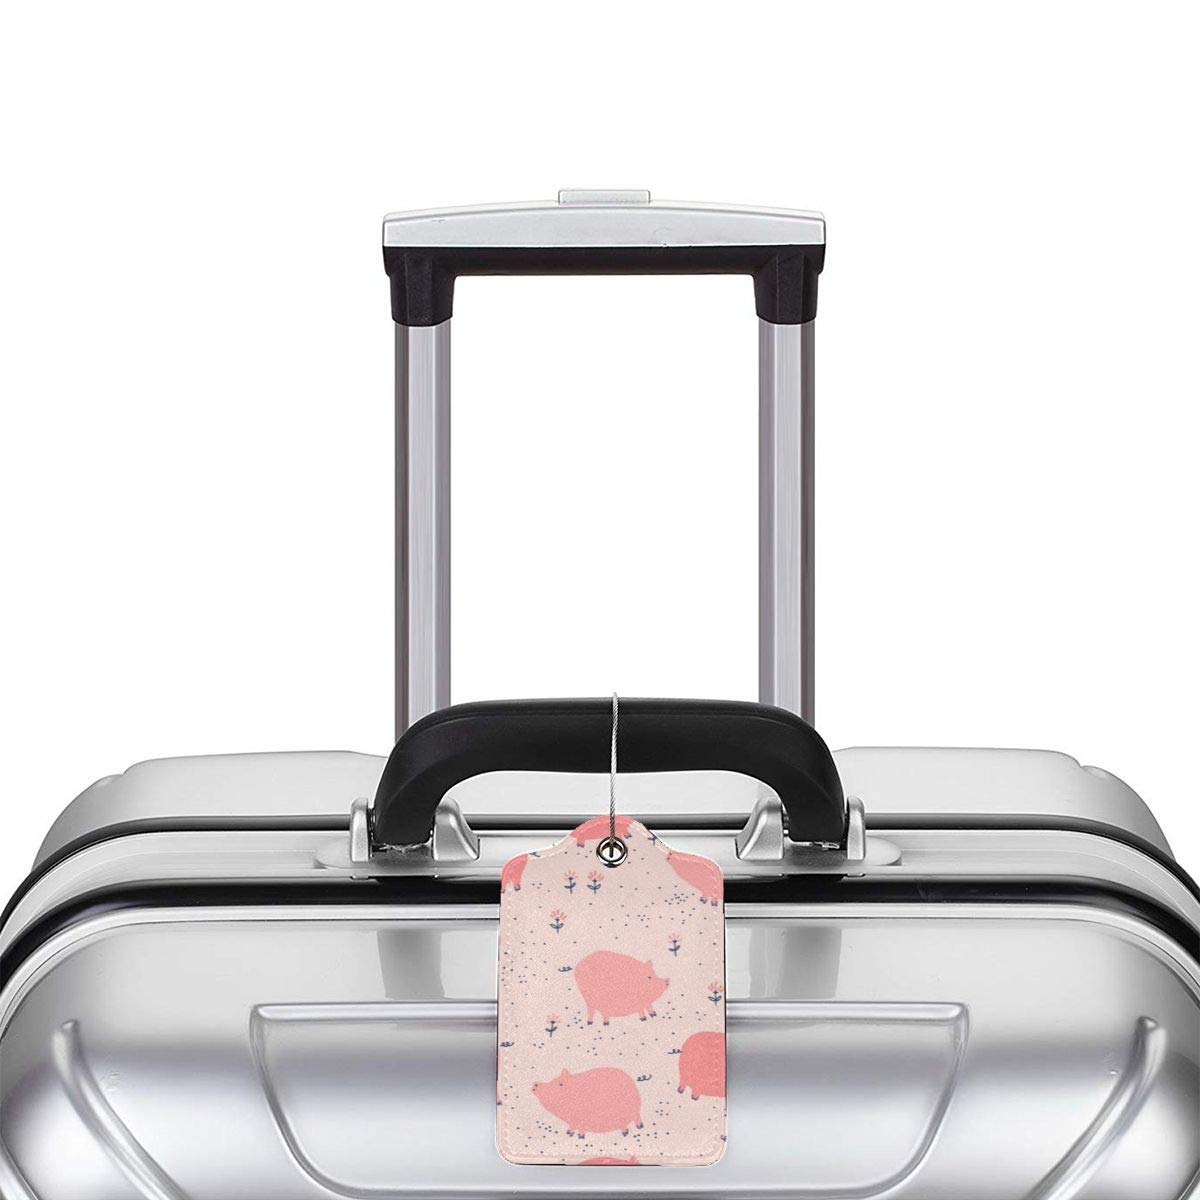 GoldK Pink Pigs Leather Luggage Tags Baggage Bag Instrument Tag Travel Labels Accessories with Privacy Cover